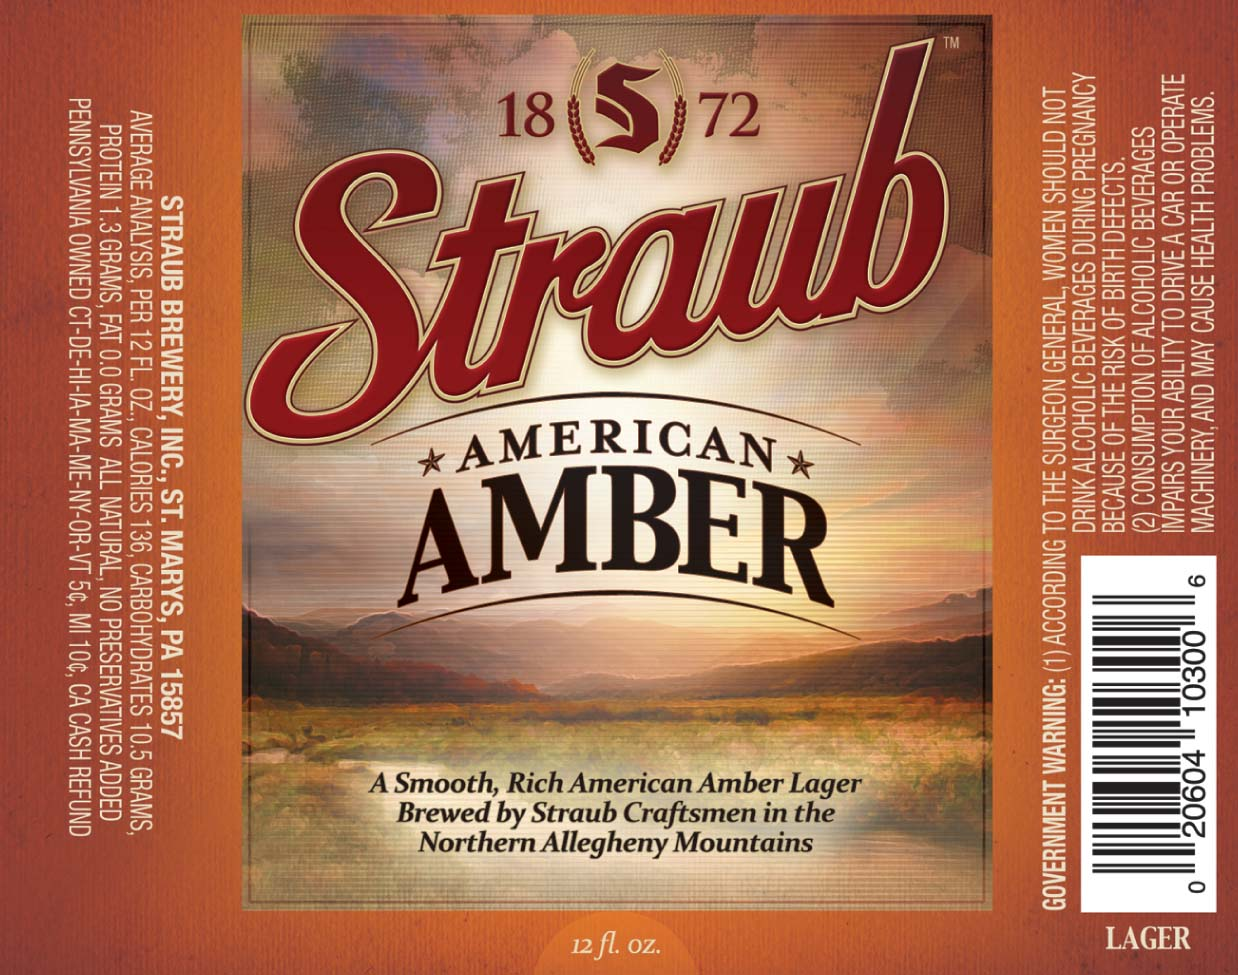 ... April 9, 2012 at 1238 × 975 in Straub American Amber Ale